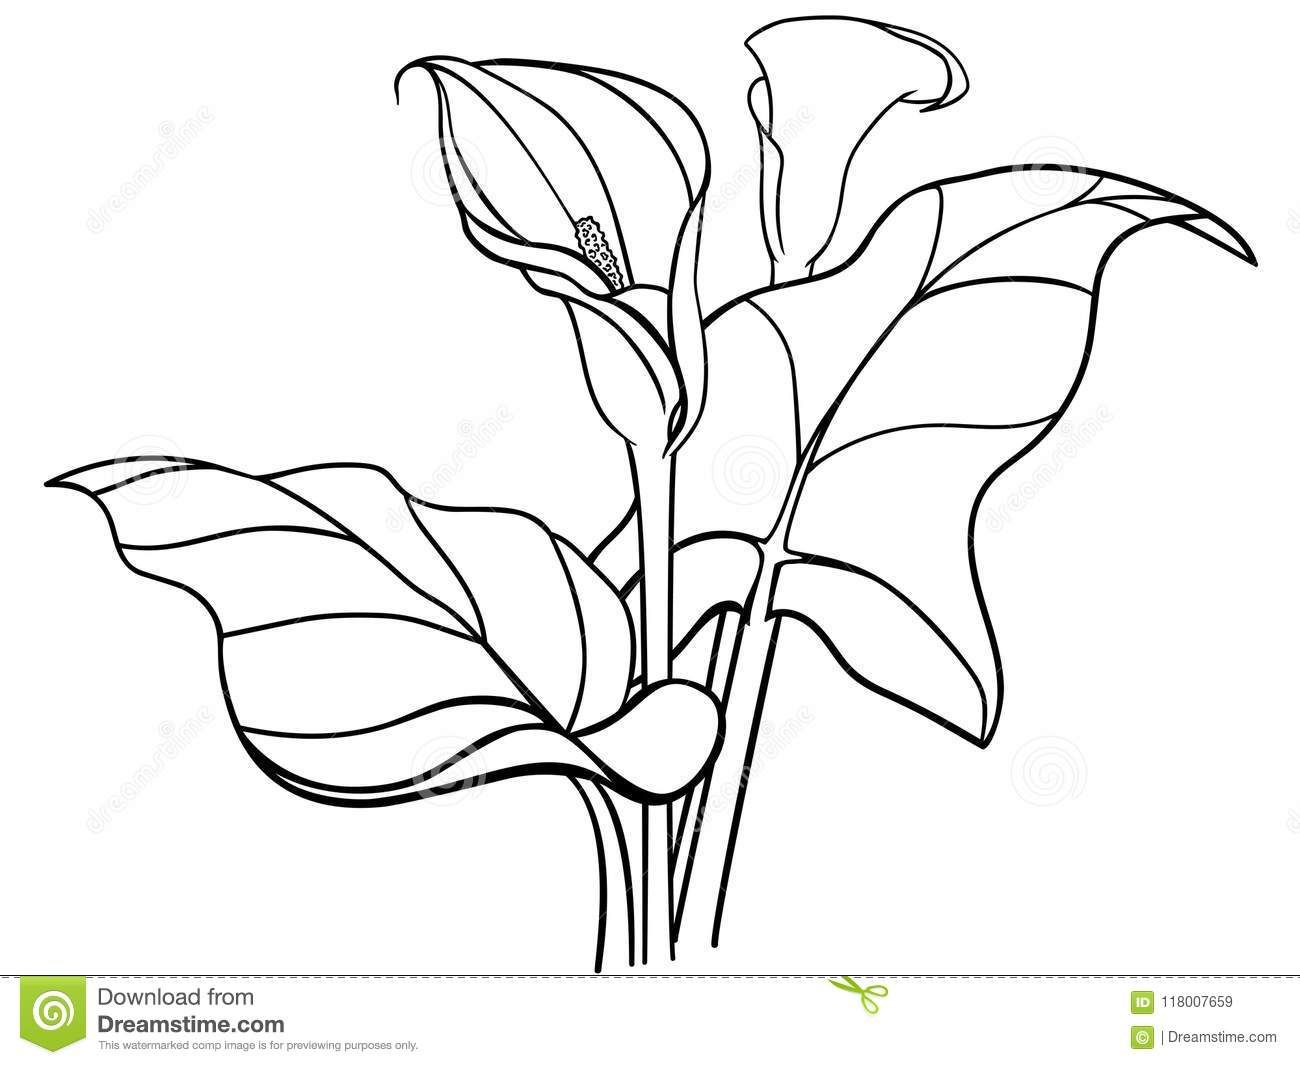 Calla Lily Flower Drawing & Coloring